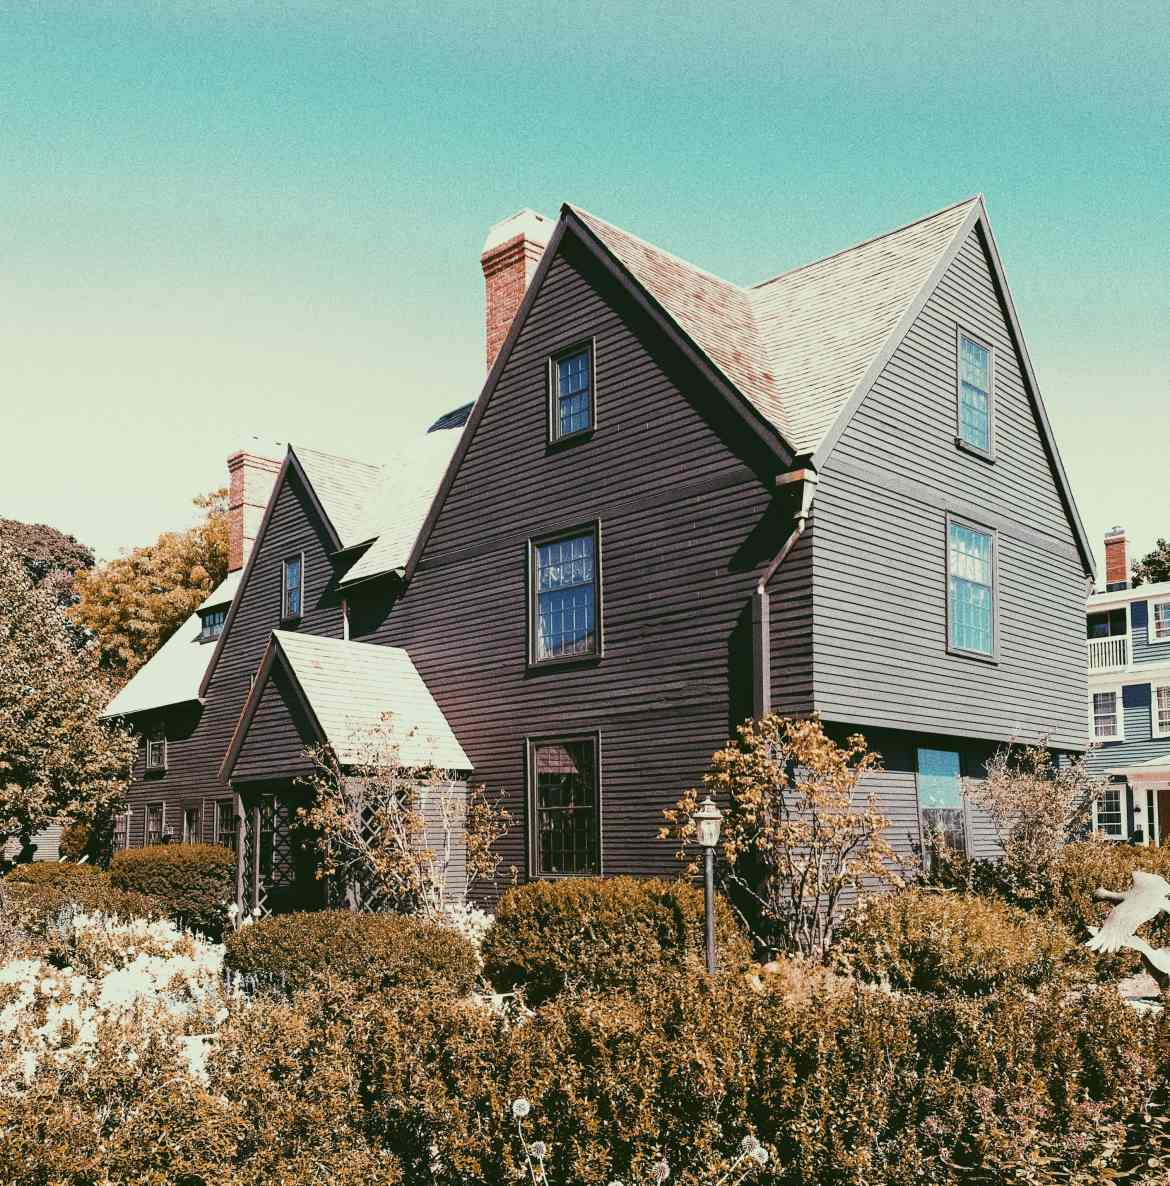 The House of Seven Gables, Salem MA